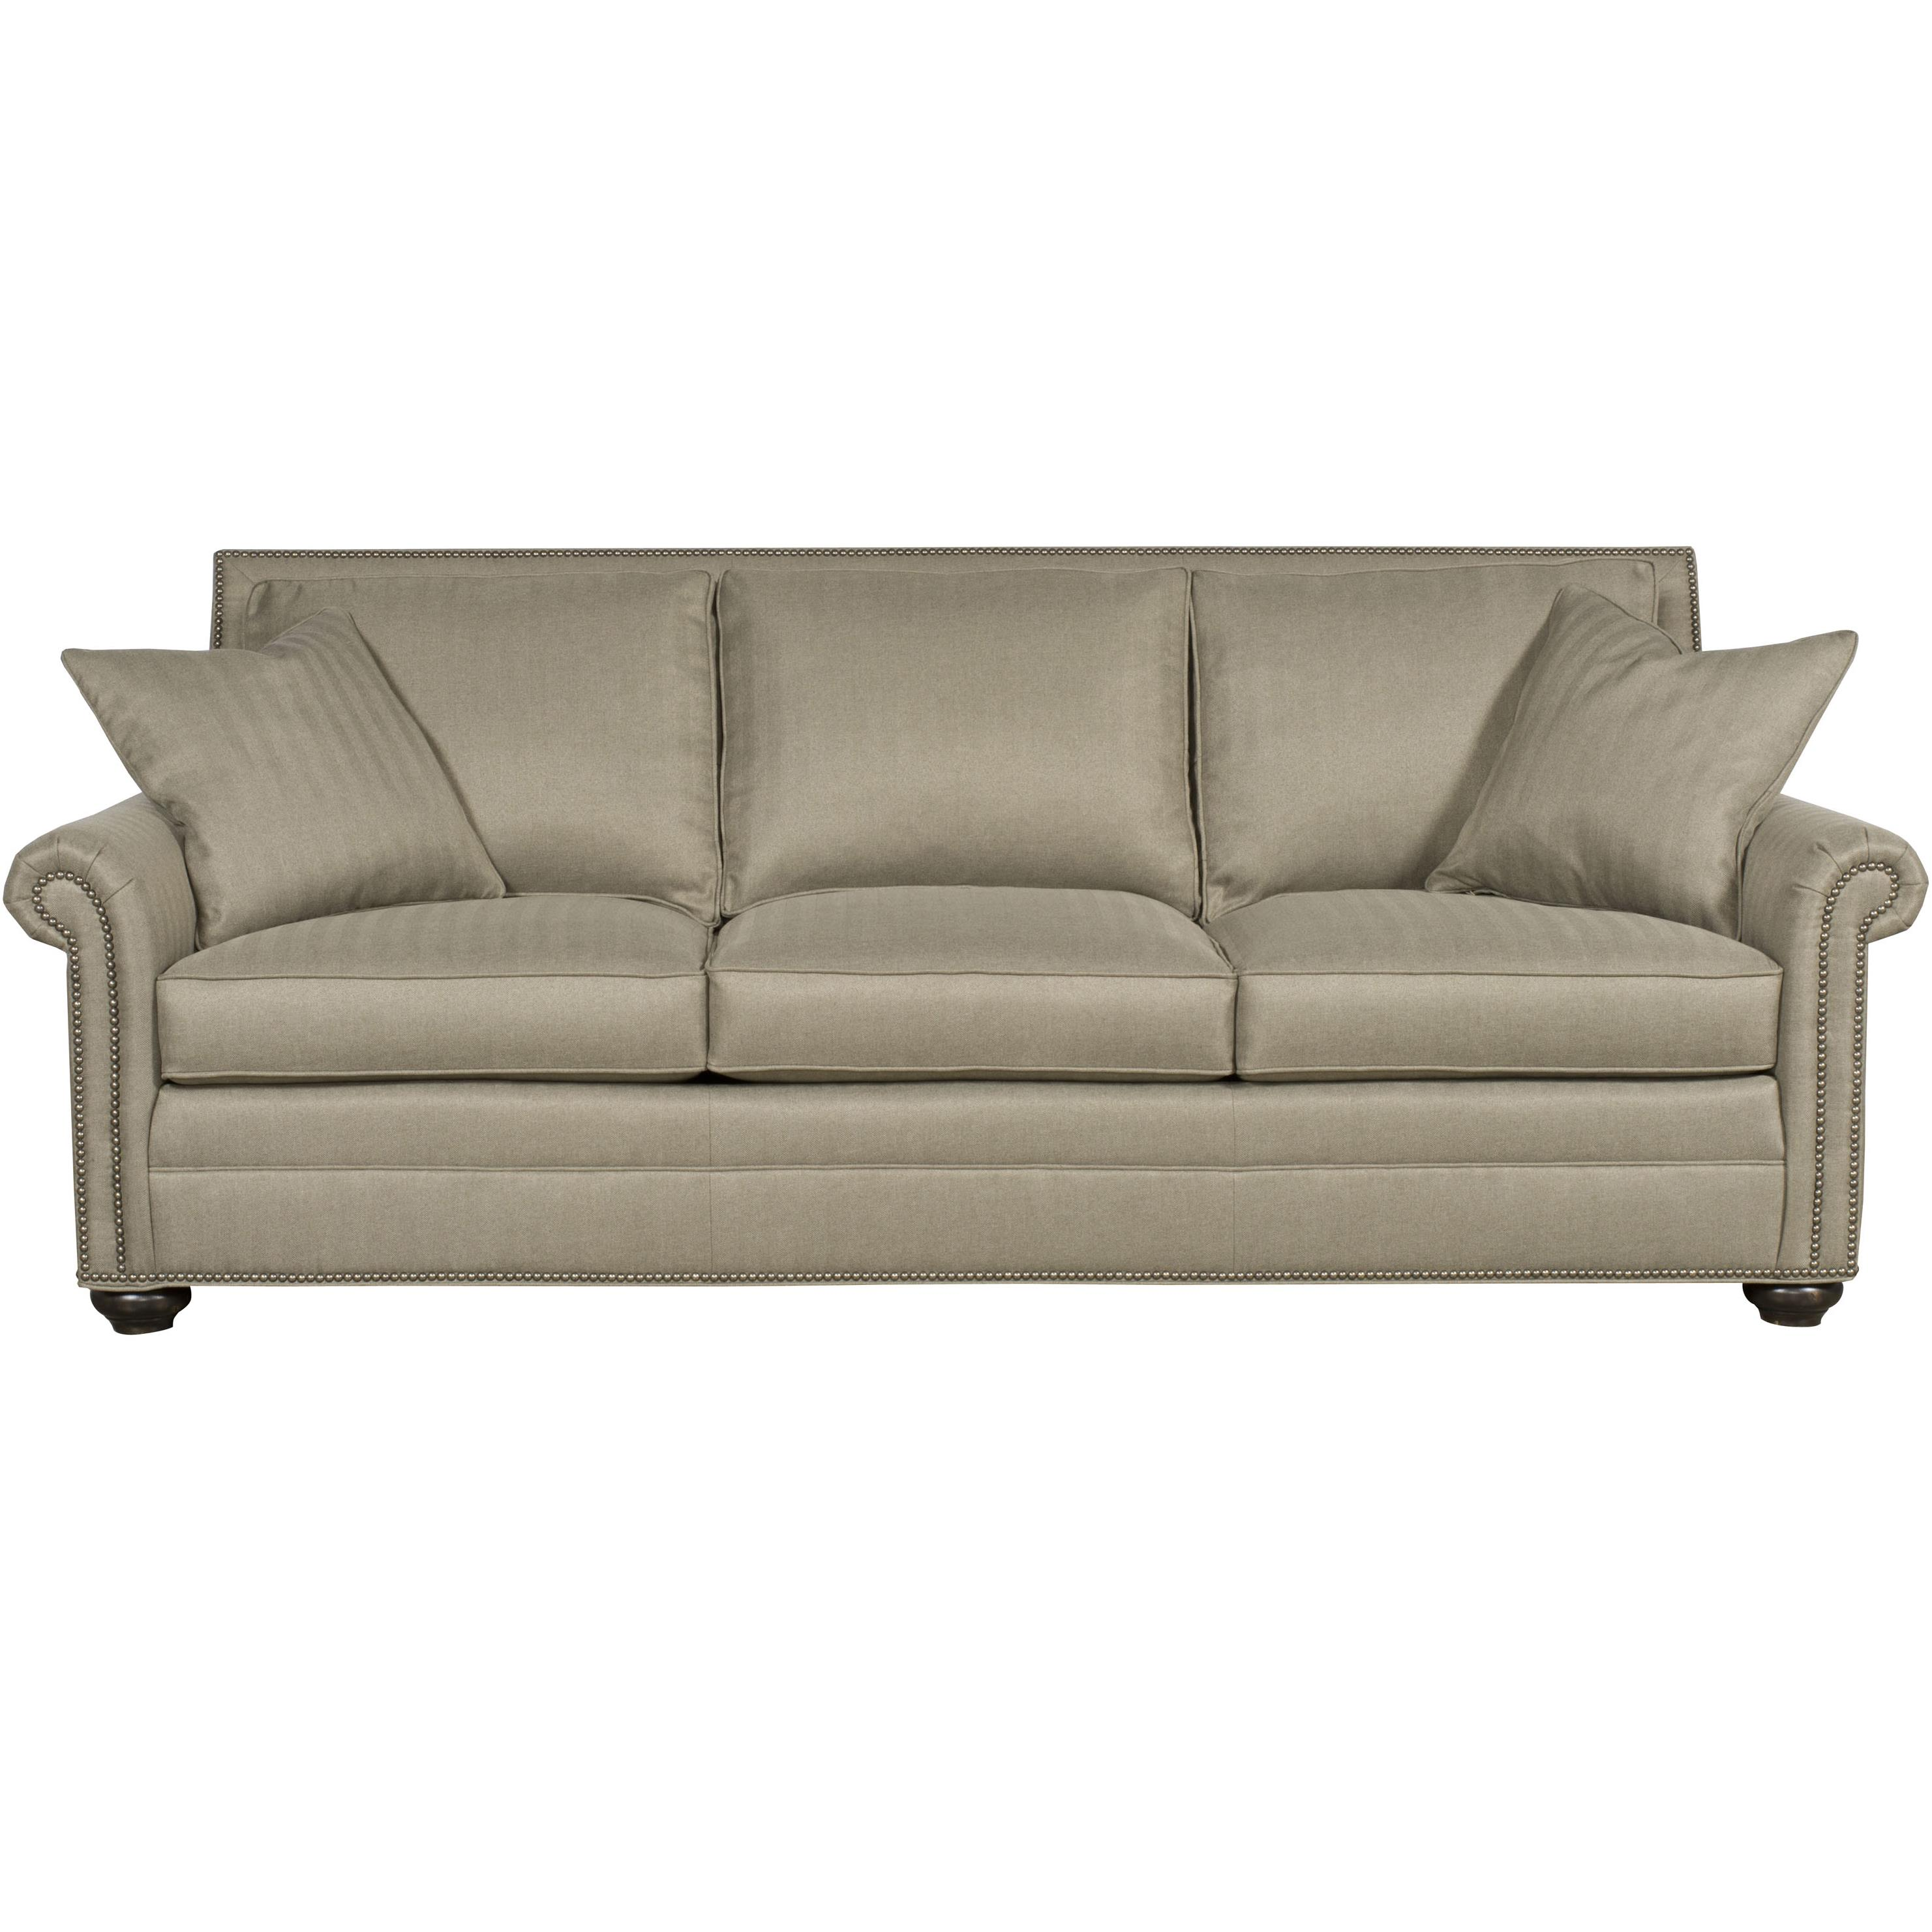 Simpson Traditional Sofa Sleeper by Vanguard Furniture at Baer's Furniture